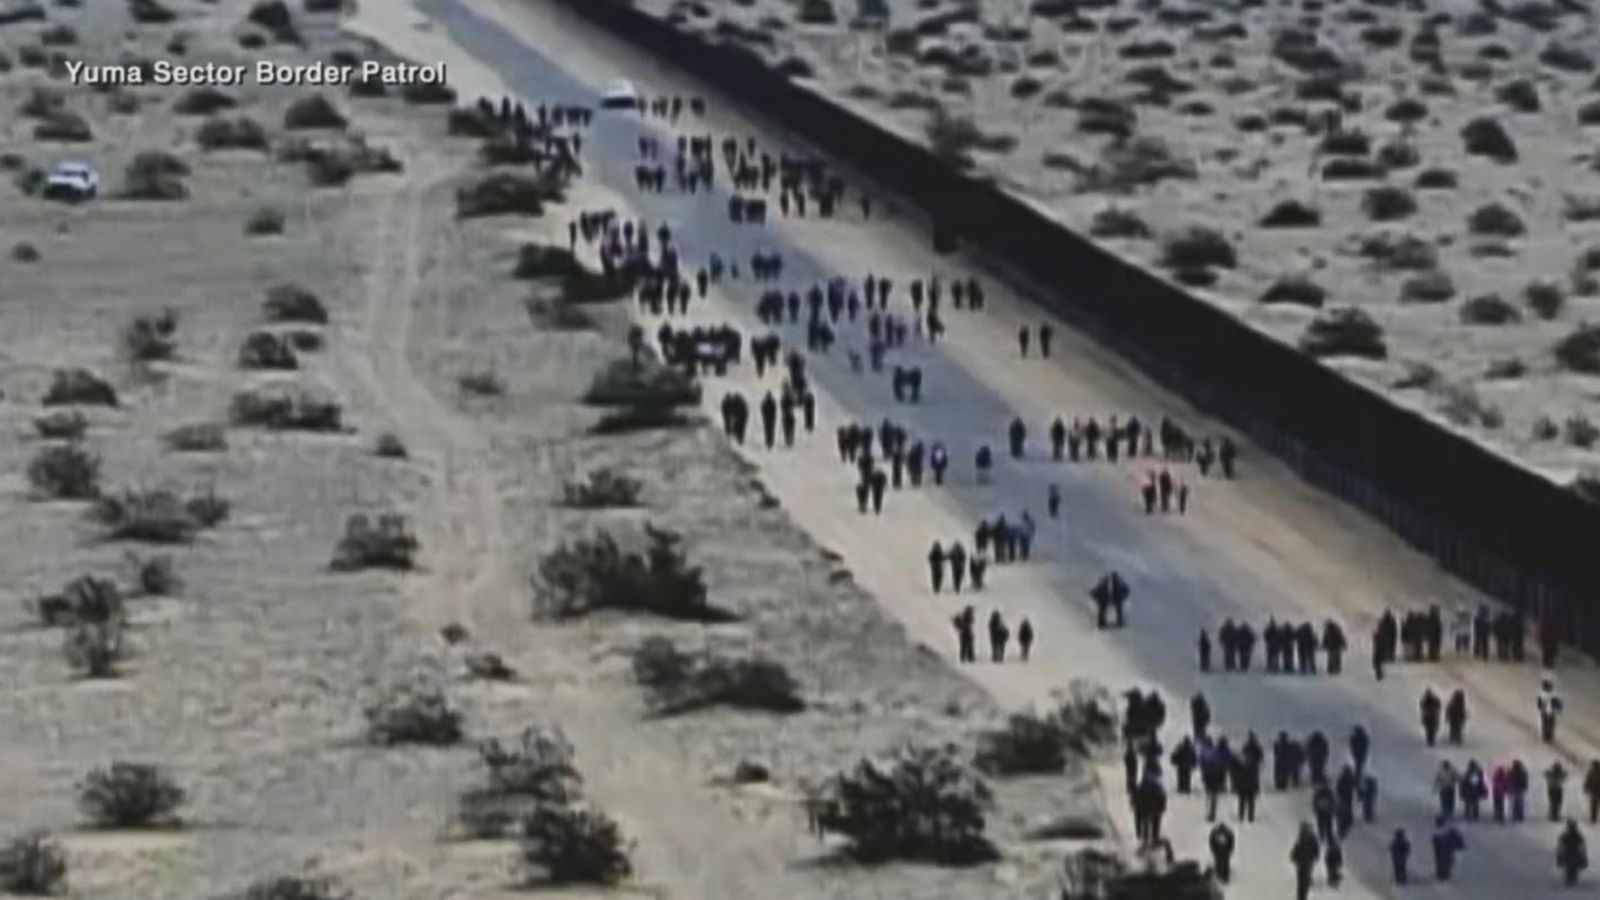 Largest single group of migrants ever tunnels under border wall: CBP